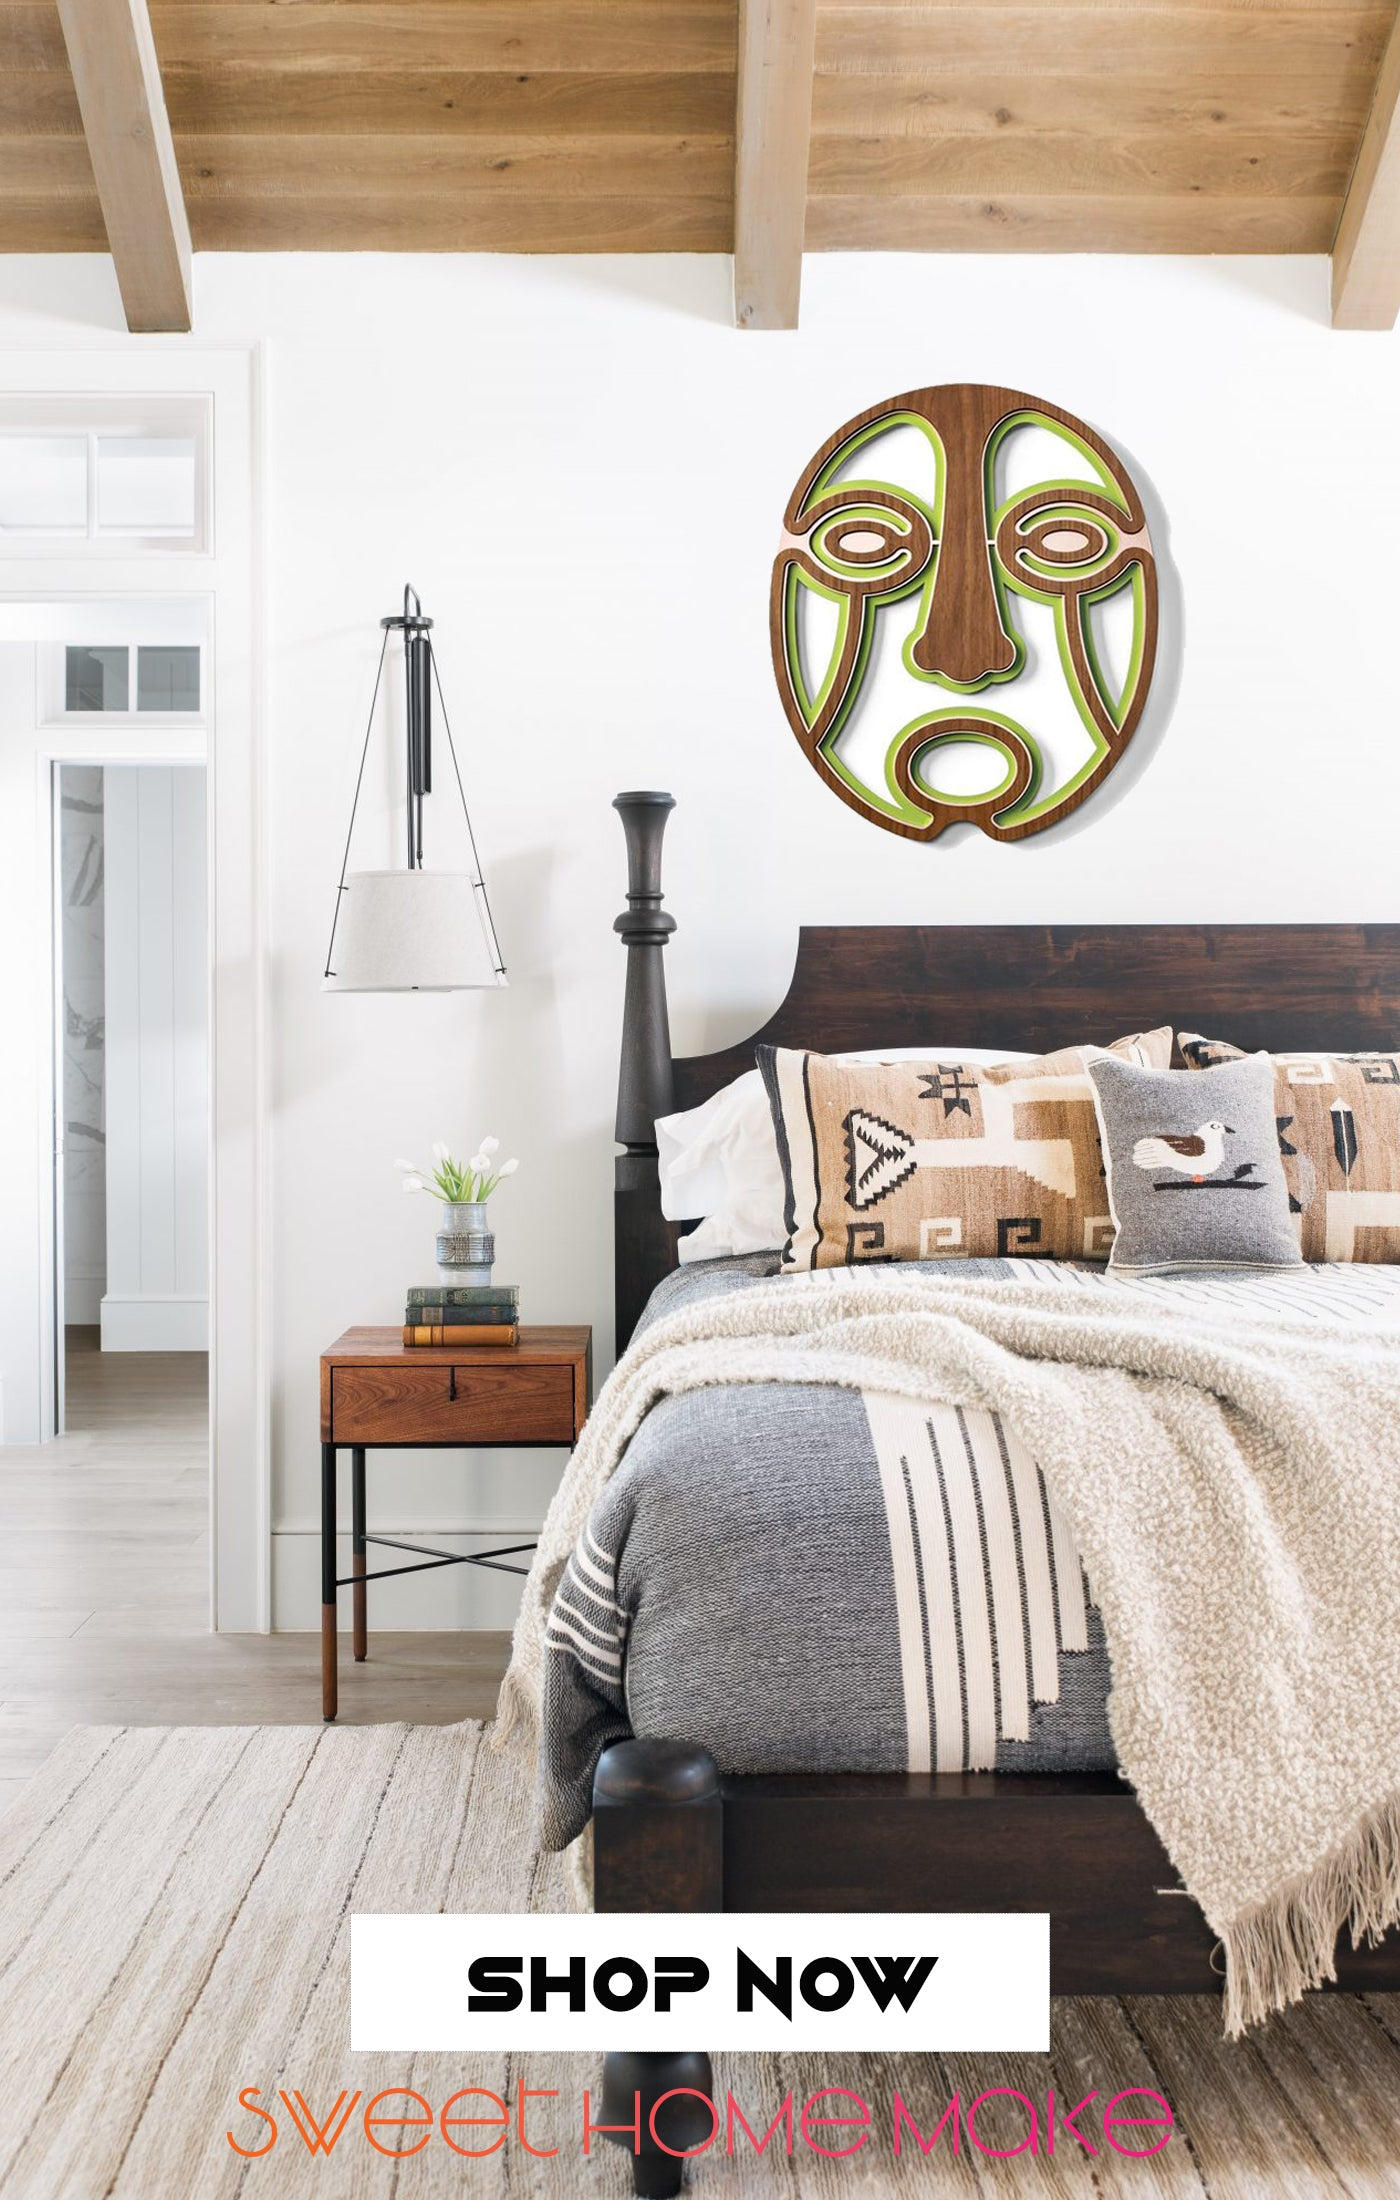 Decorative Mask Carved Wood Wall Art at the Bedroom Design